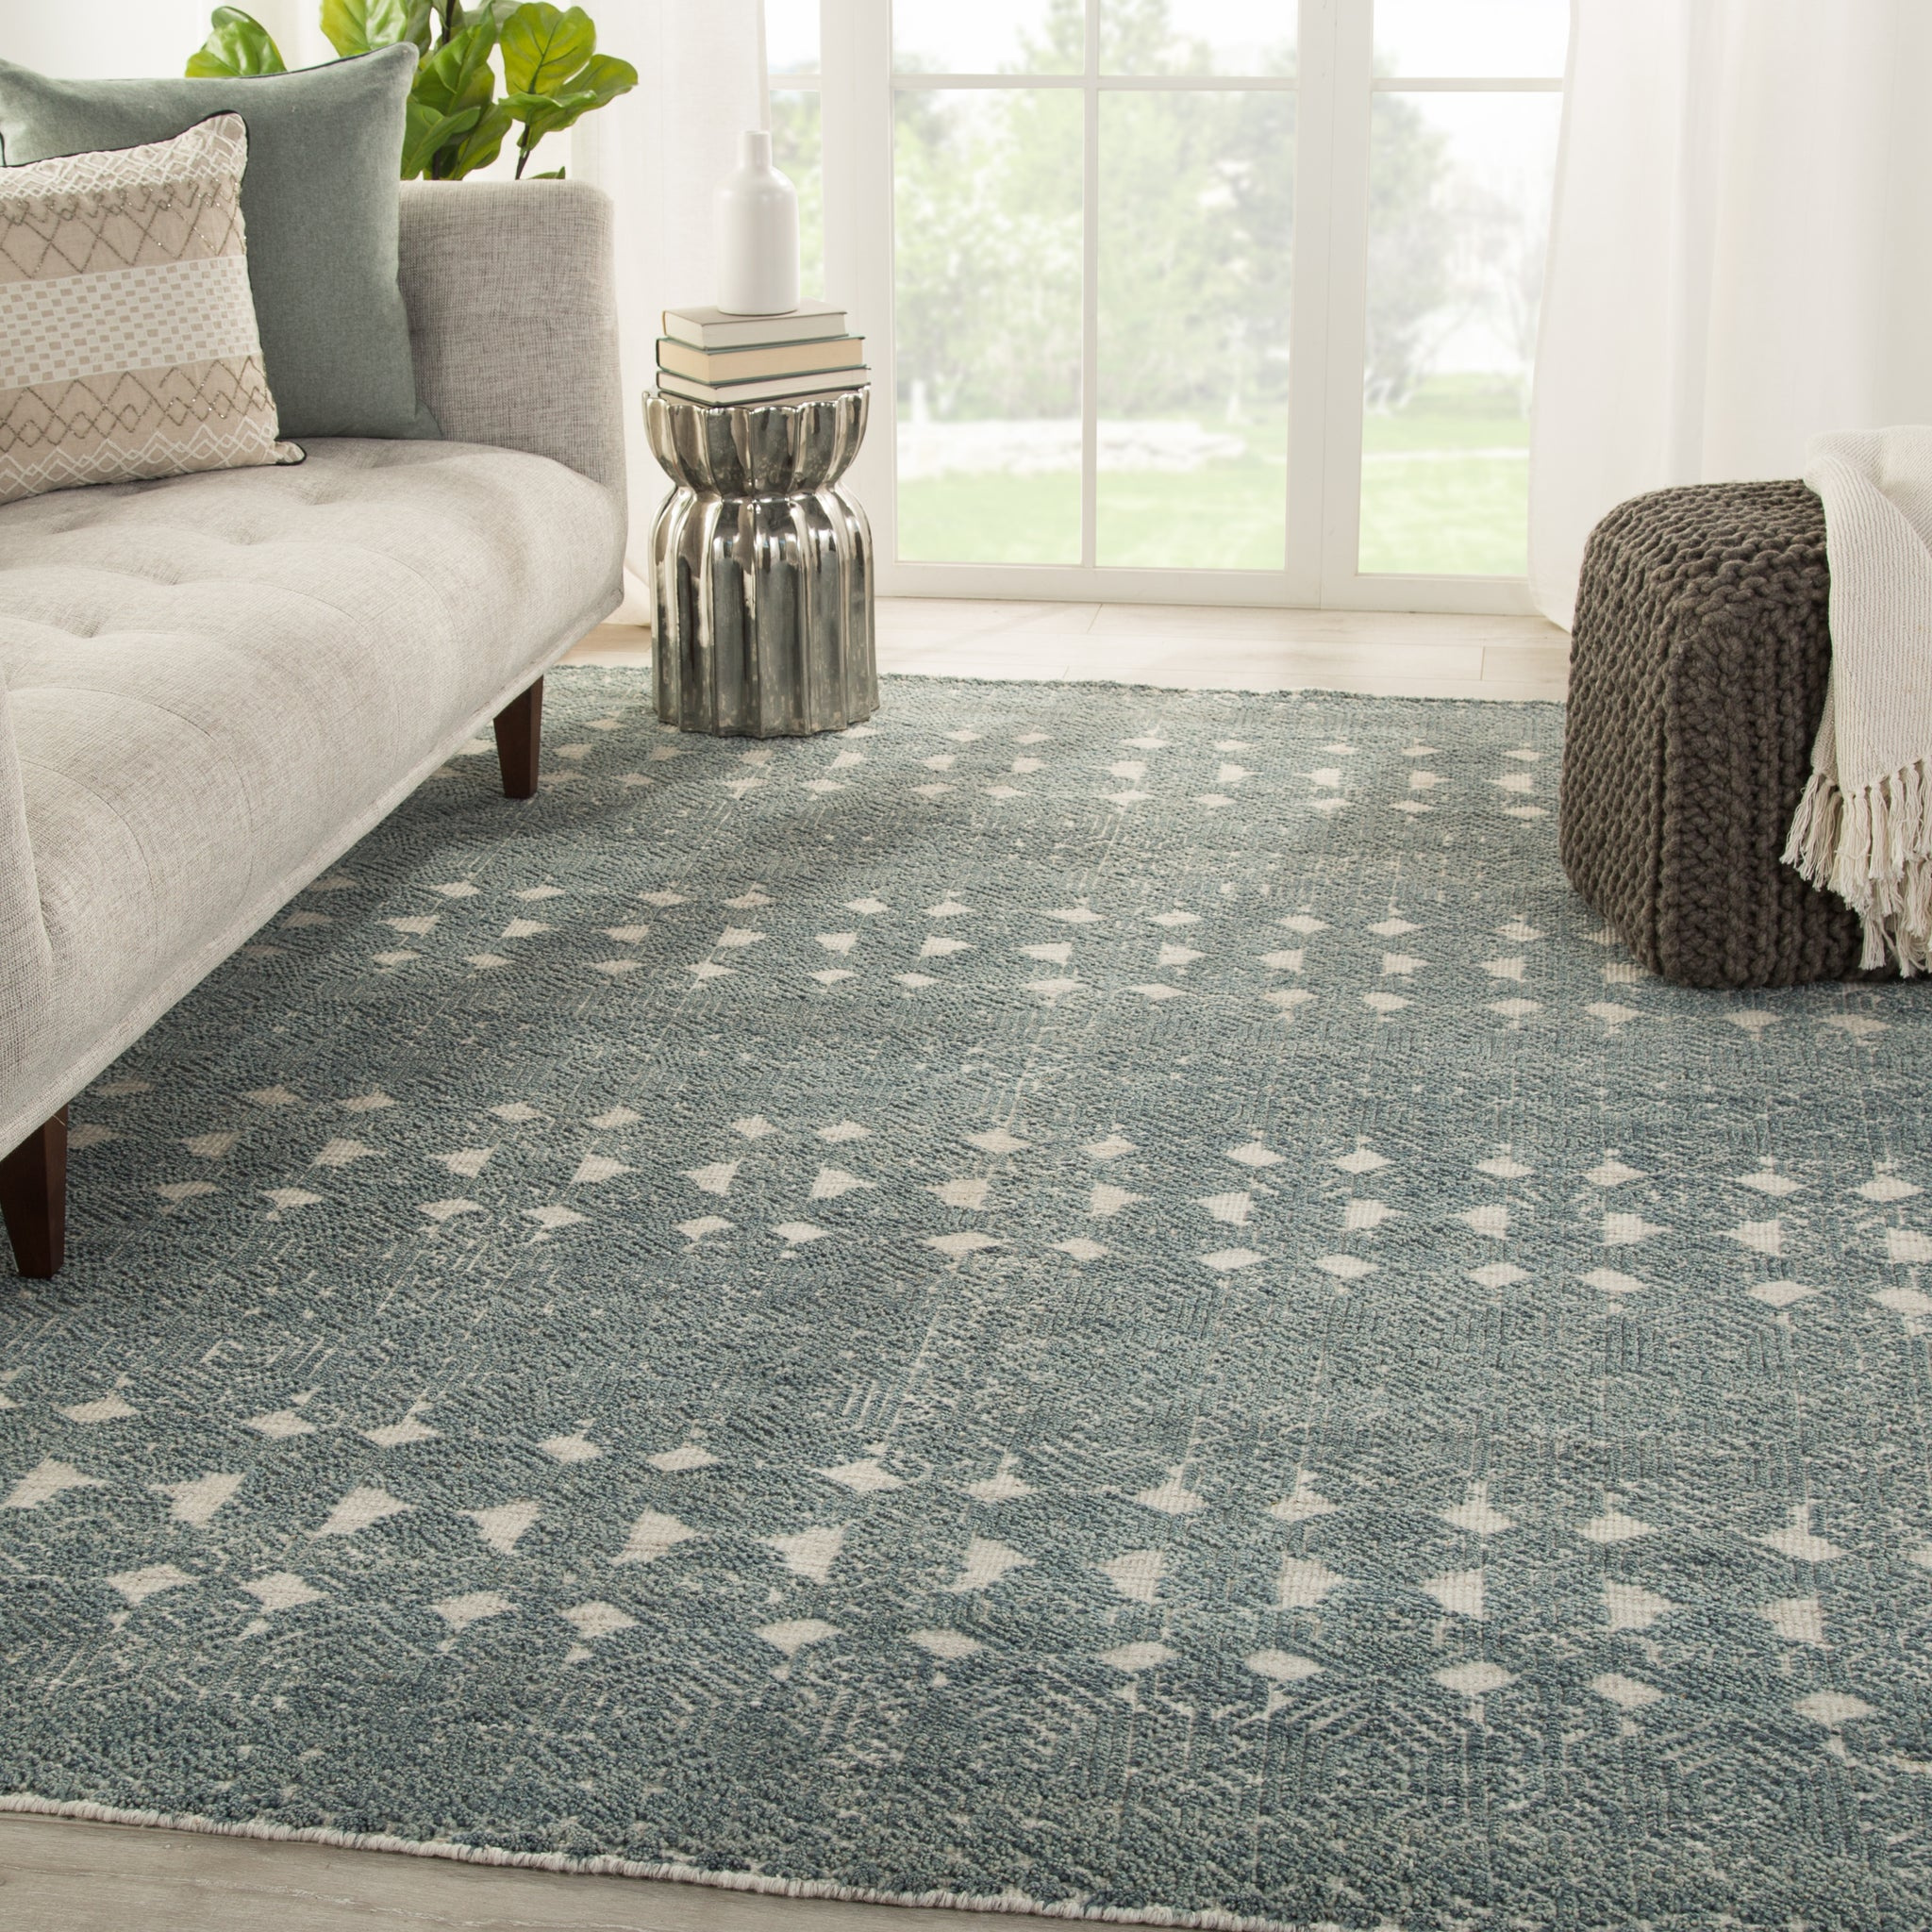 Abelle Hand Knotted Medallion Teal Light Gray Rug Burke Decor